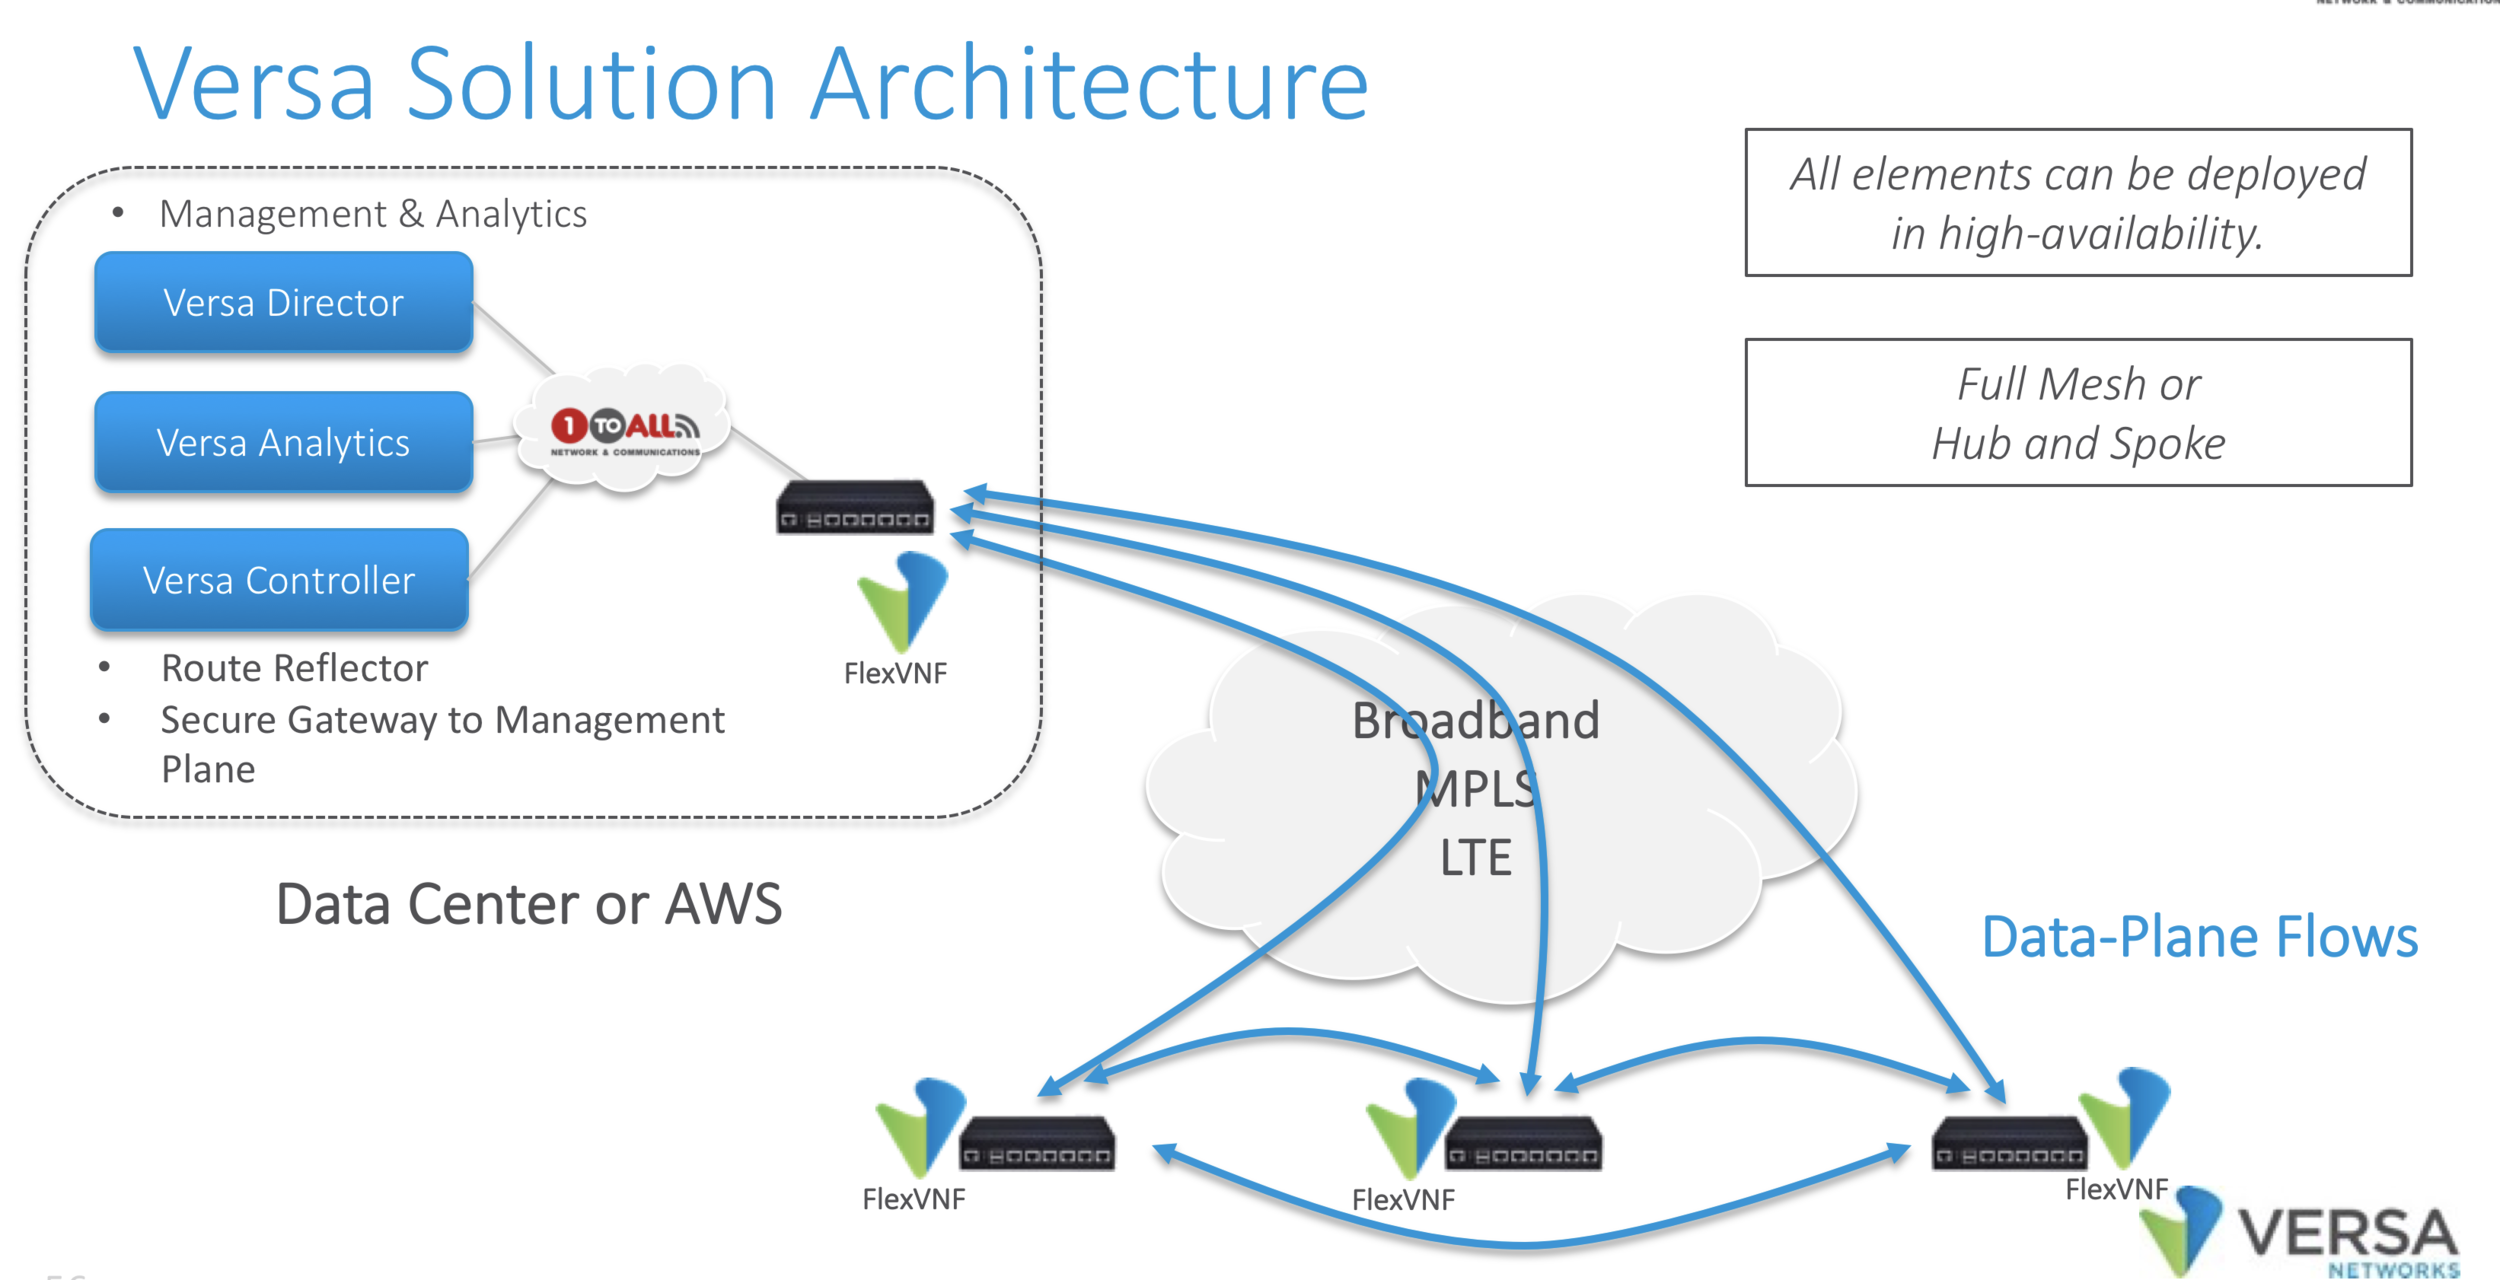 Next-Generation Architecture - Unlike 20 year-old technology like MPLS, where all the CPU processing and highly intensive tasks (routing, analytic etc) are performed at the edge device, our SD-WAN decouple them and move those resource-intensive tasks to the cloud. This is the power of Software Defined Wide Area Network (SD-WAN)